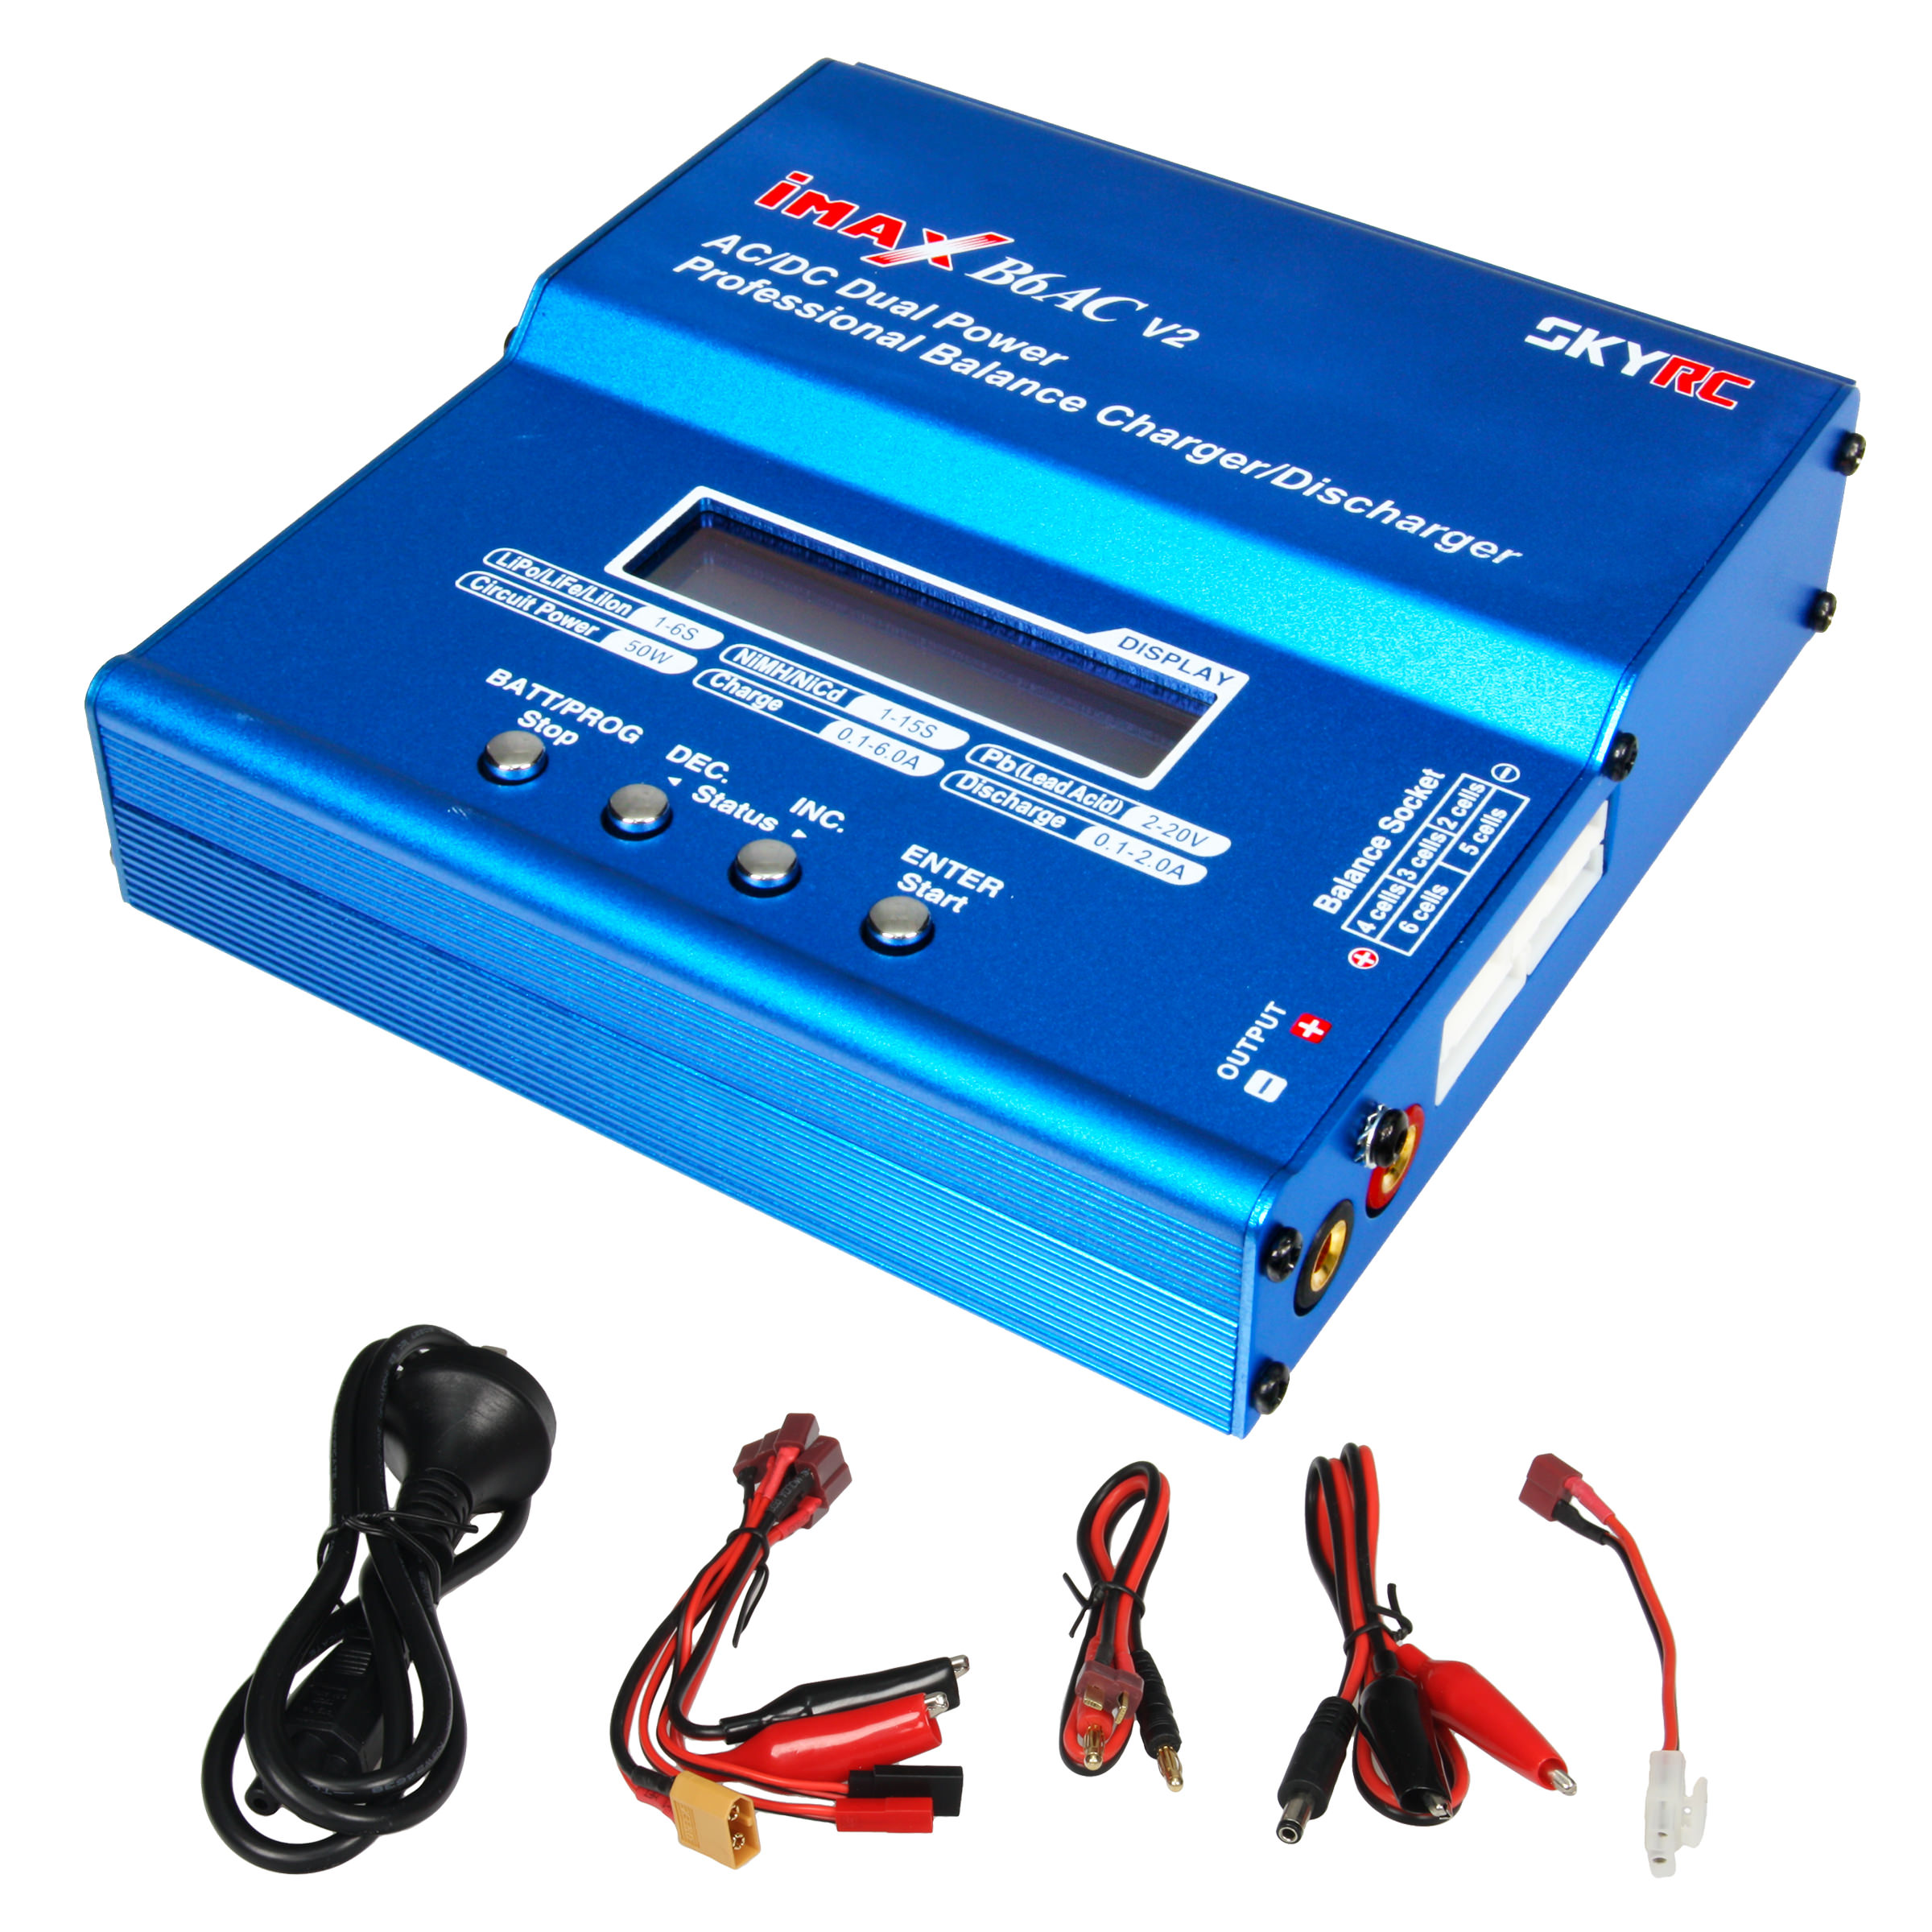 Skyrc Imax B6ac V2 Version 2 Digital Rc 3s Lipo Nimh Battery Balance Circuit Also Alkaline Charger As Well At Hobby Warehouse